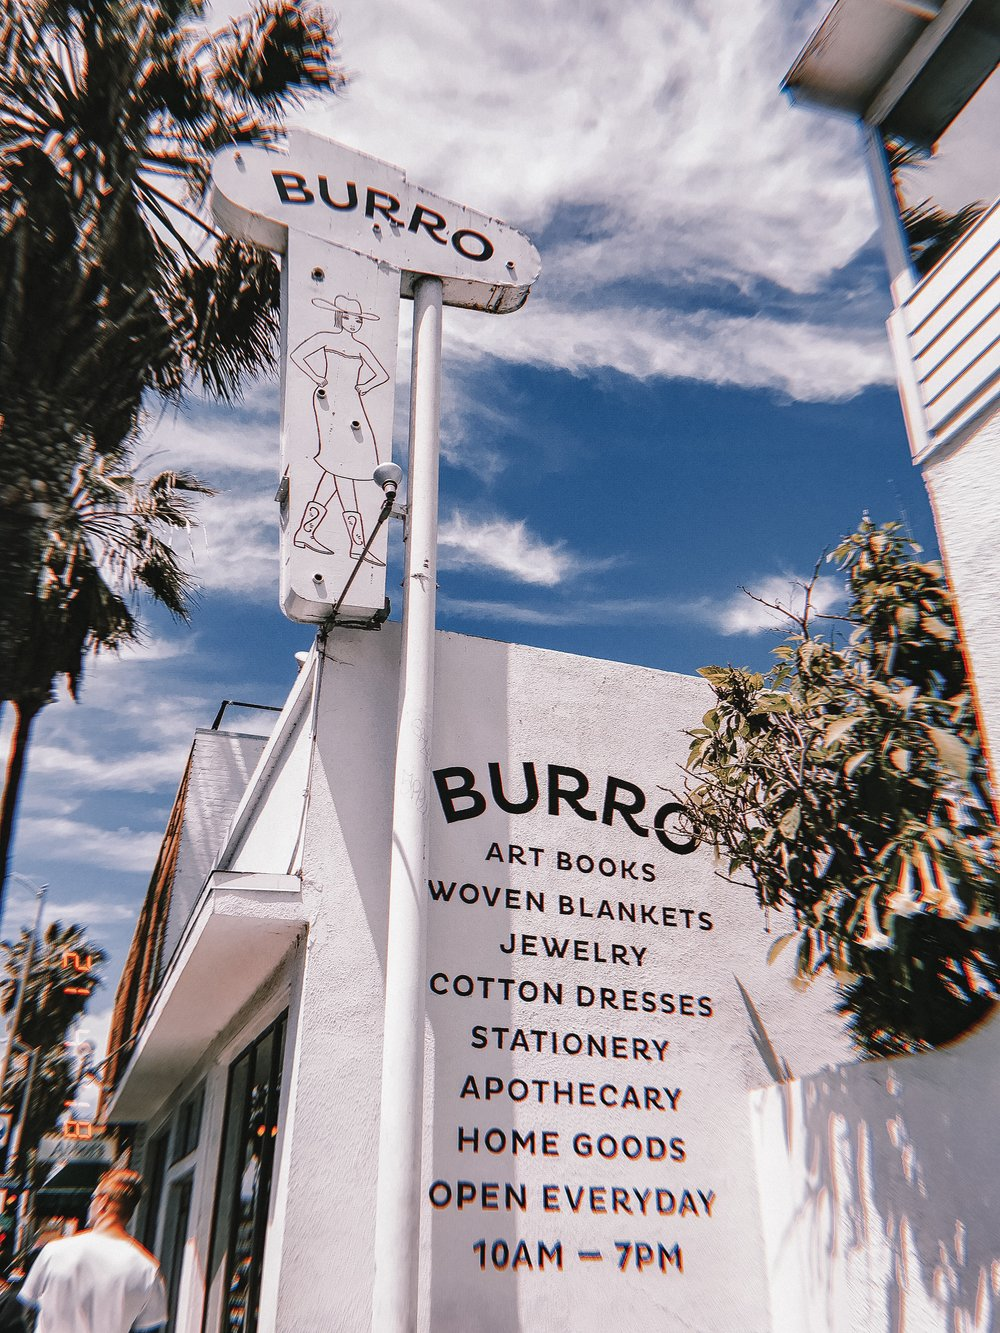 Visit Burro - My favourite store along the Abbot Kinney Boulevard. This has everything from books, homeware, beauty products, clothing to gifts! I spent way too much in there but picked up some candles, spicy margarita mix and a few gifts for my family.1409 Abbot Kinney Blvd., Venice, CA 90291